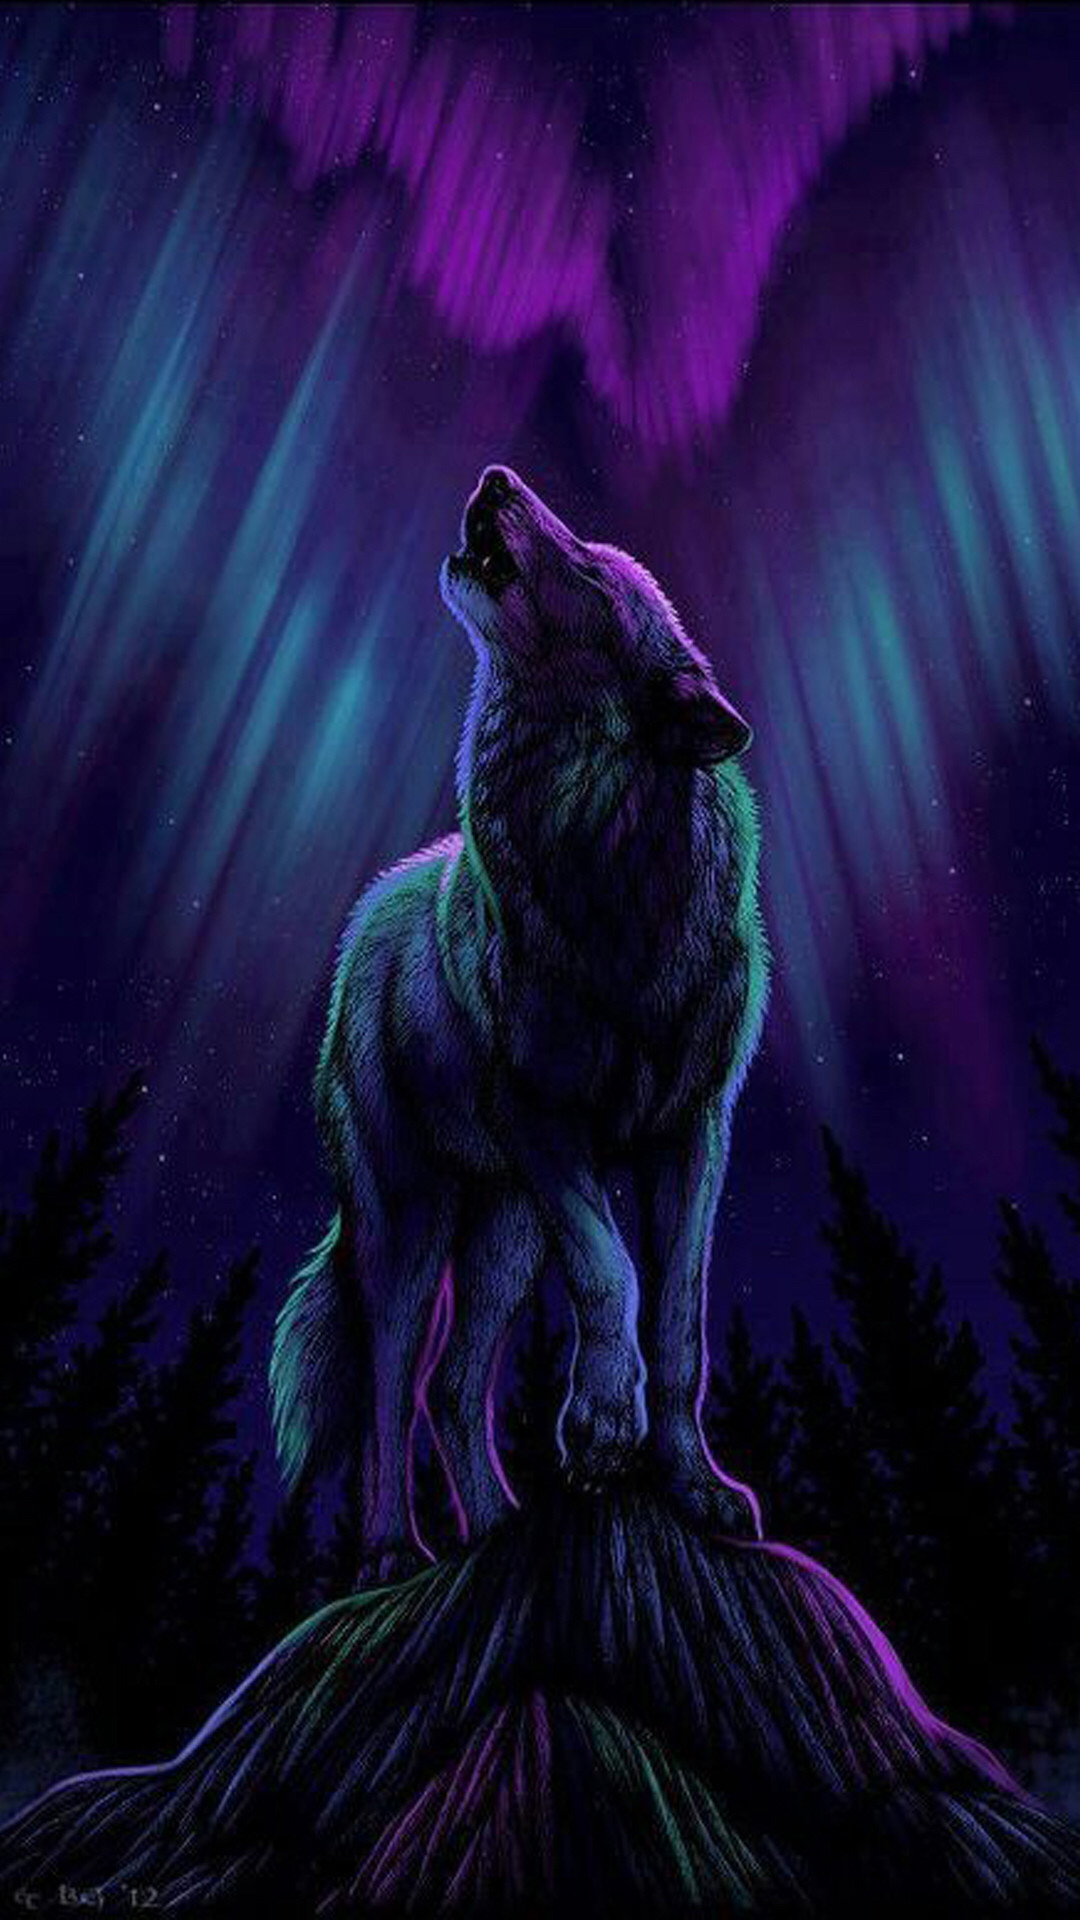 Wolf Art Wallpaper 79+ images